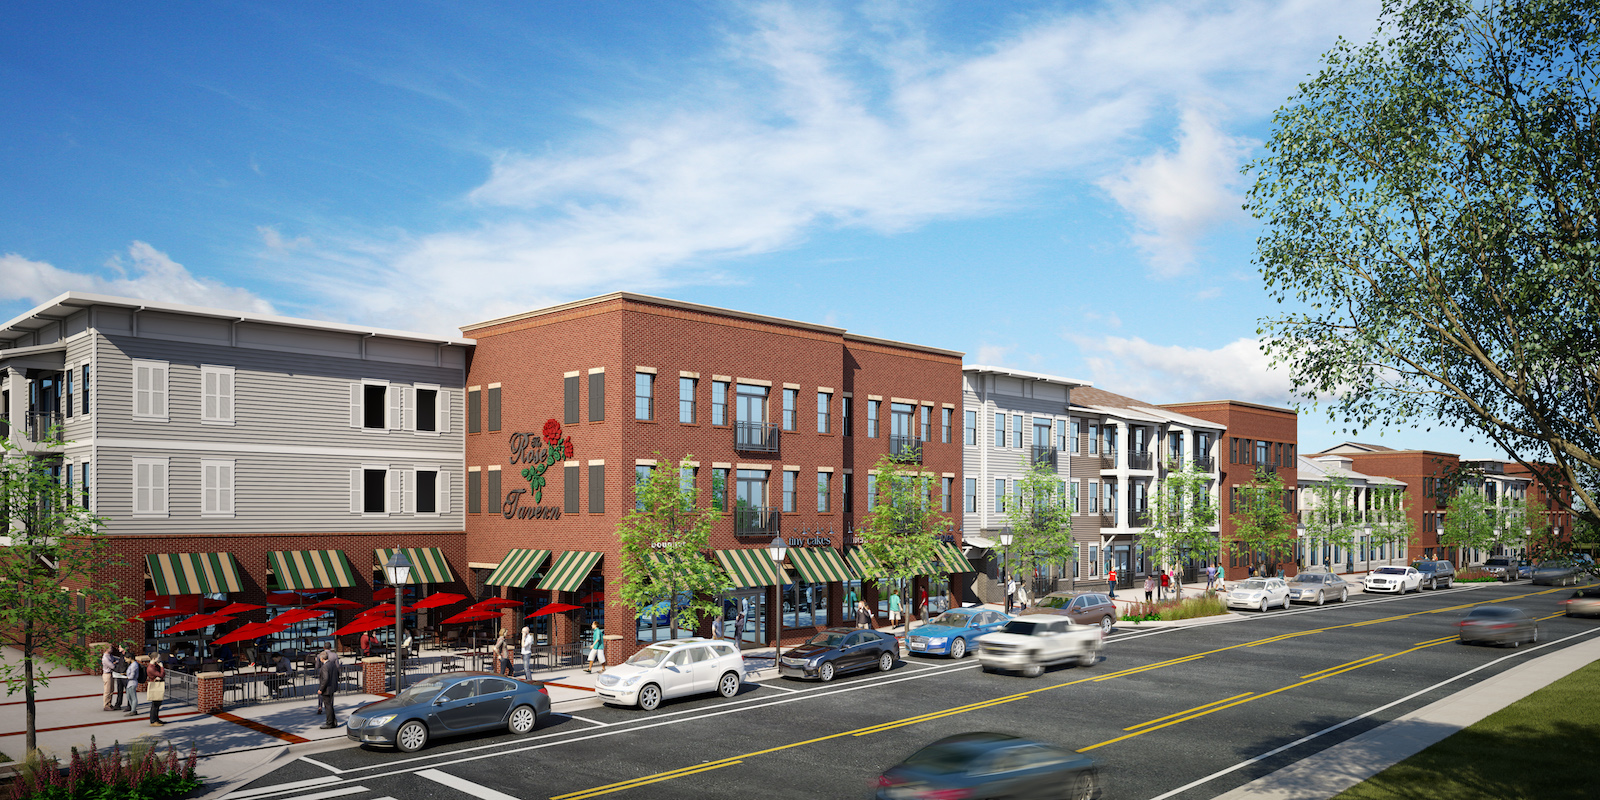 The future calls for more living, shopping, and walking in historic downtown Lawrenceville.